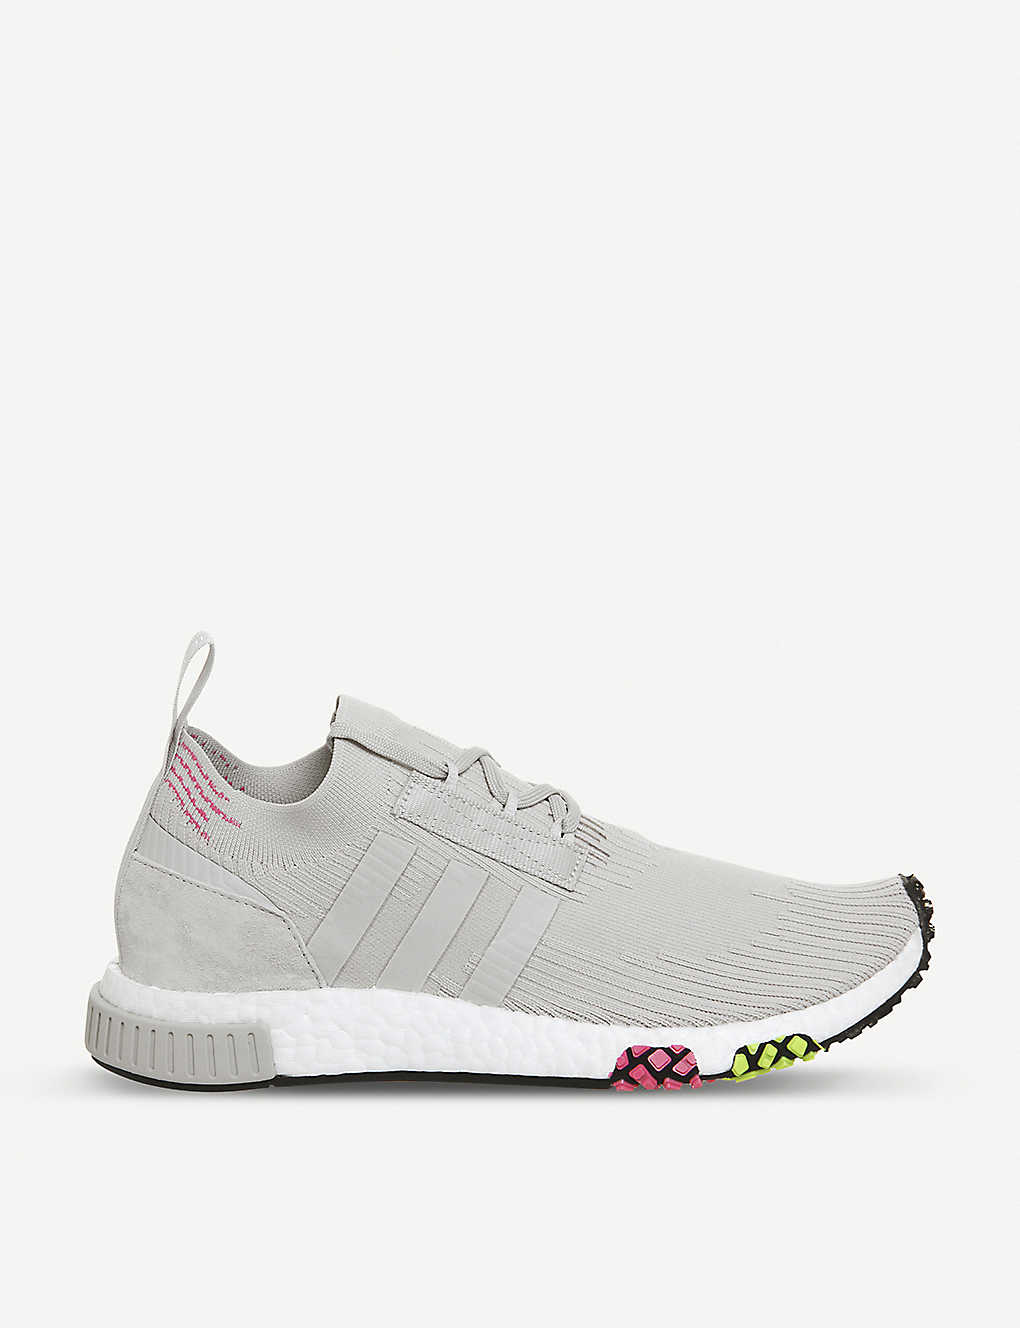 4729a83e139de Nmd Racer Primeknit and leather trainers - Grey one solar pink ...